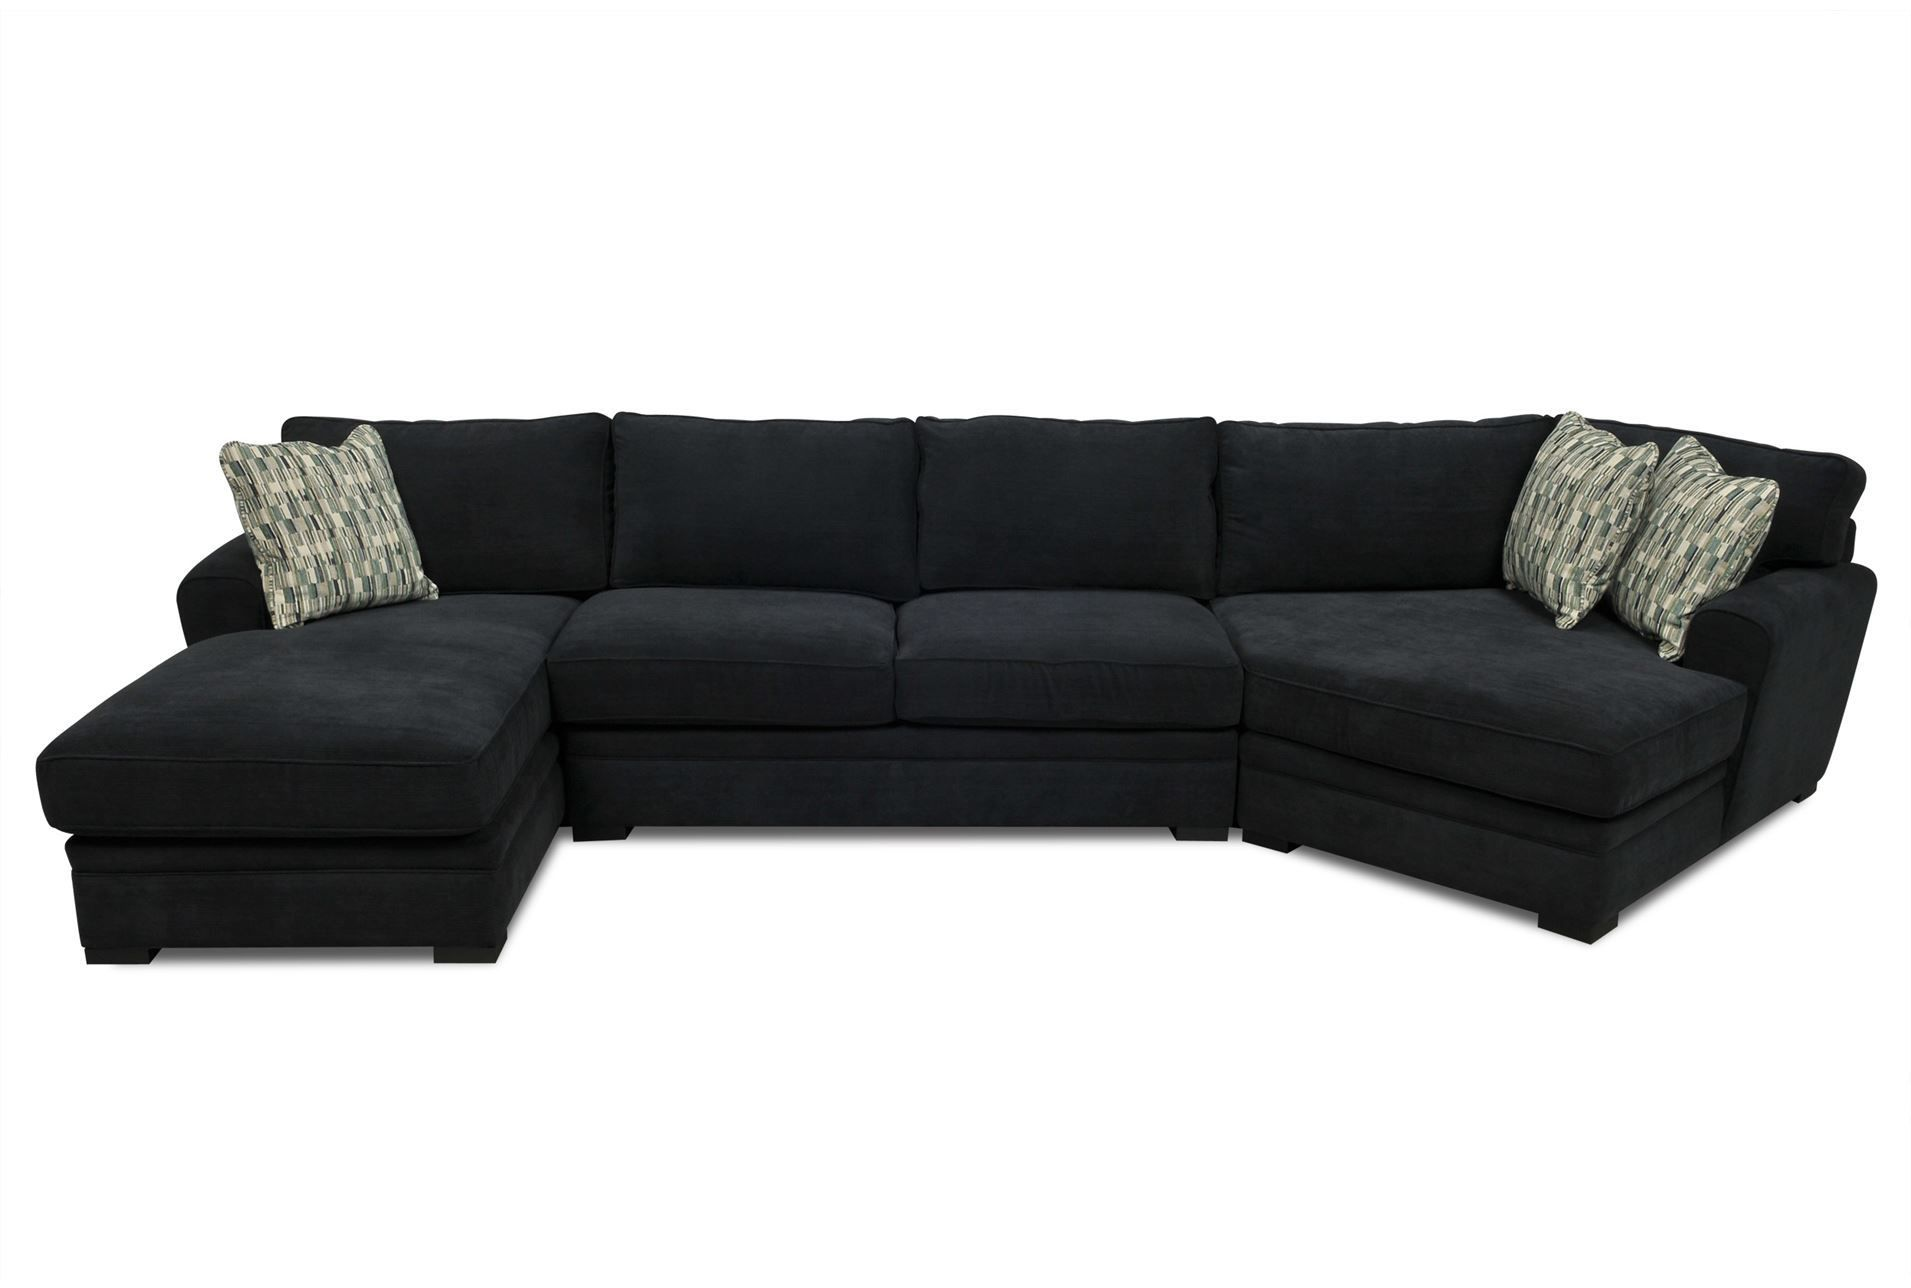 Aaron 3 Piece Sectional Large View 121 Dimensions 166 W X 67 D 38 H Sku 58928 1 295